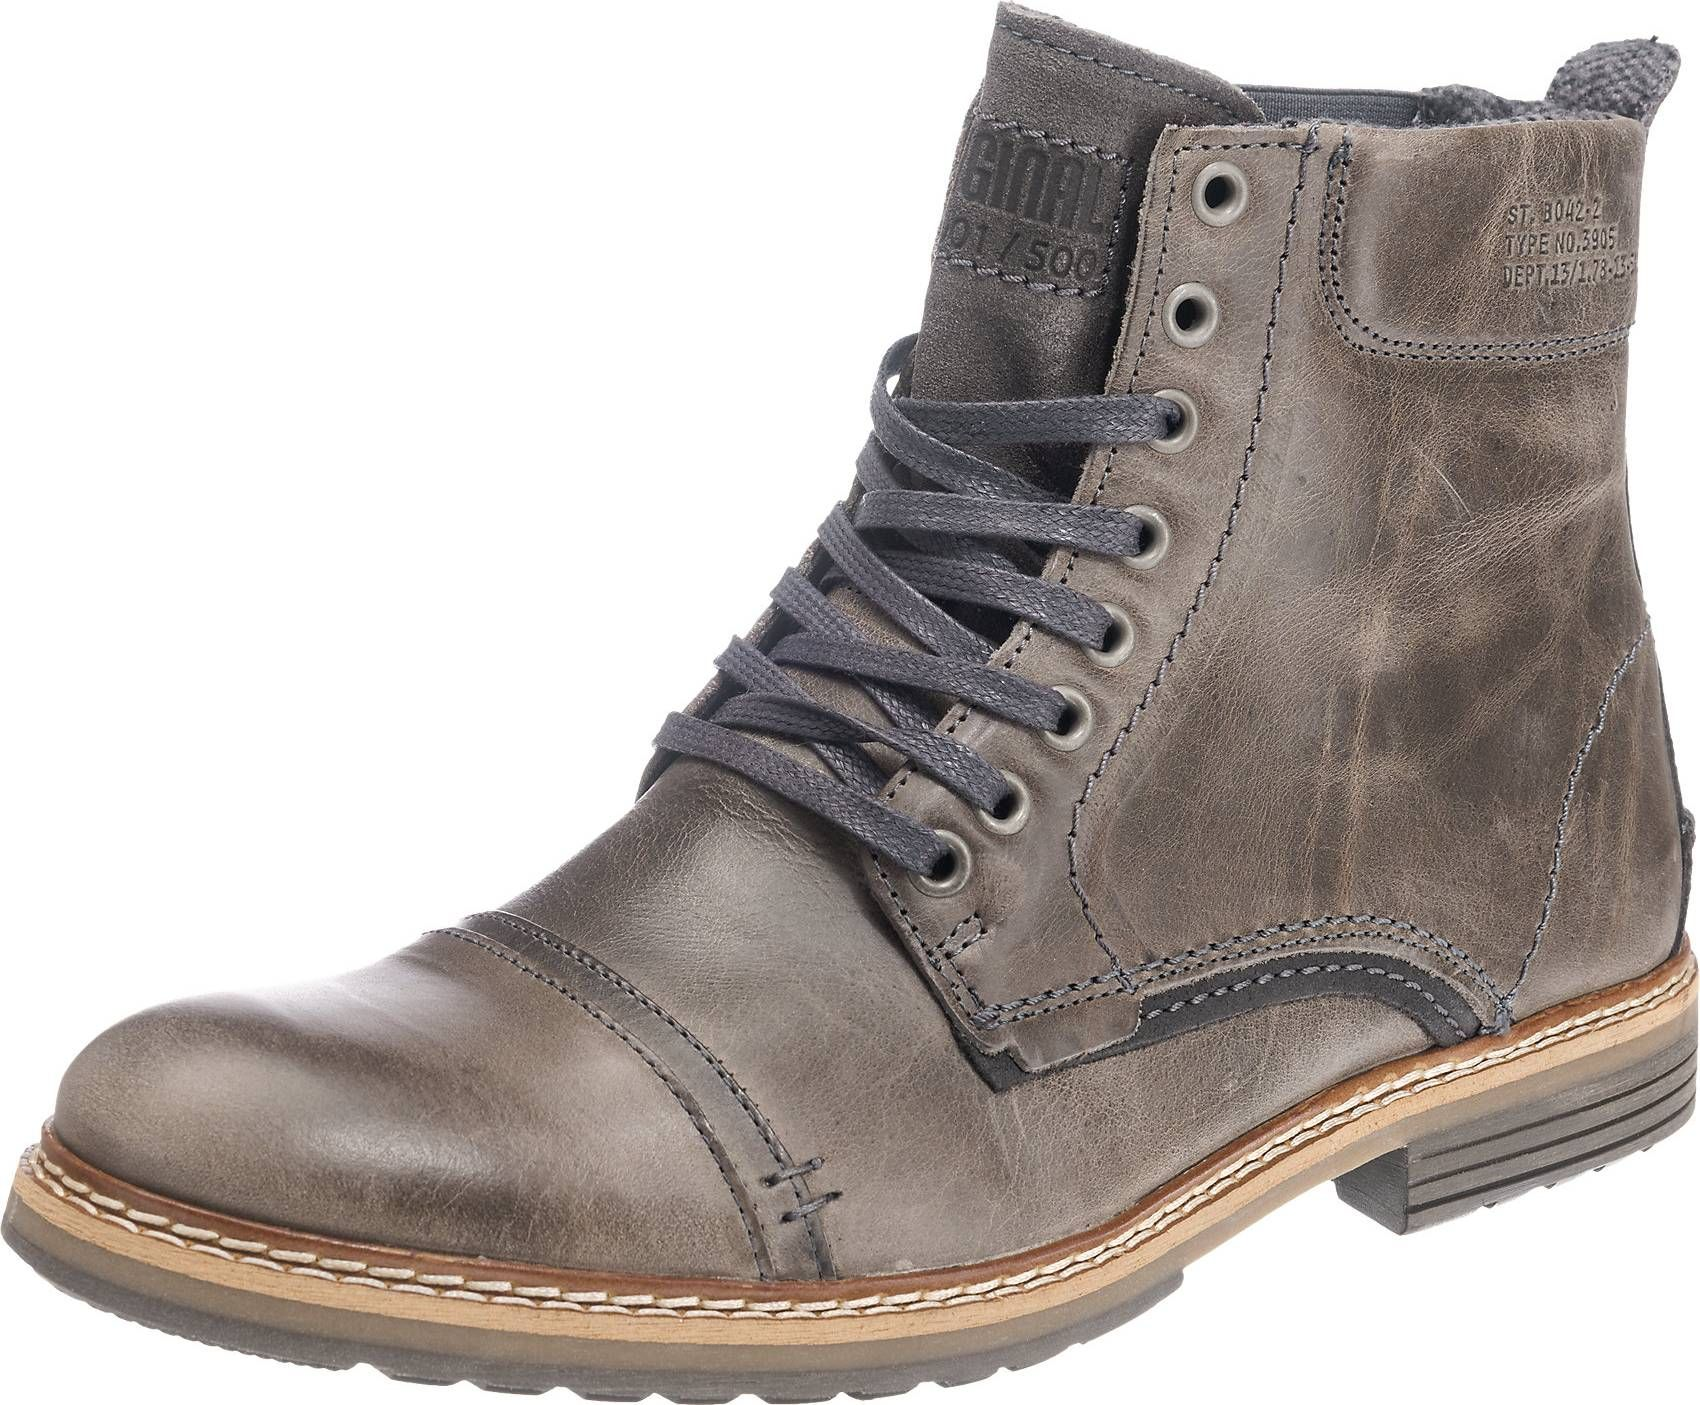 Stiefel Boots von BULLBOXER. | For my man in 2019 | Boots